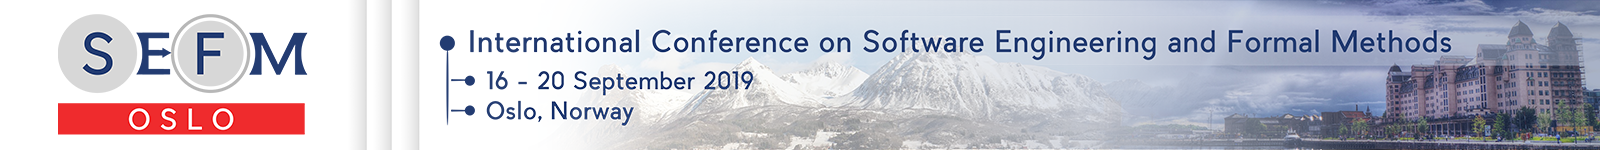 SEFM 2019: International Conference on Software Engineering and Formal Methods